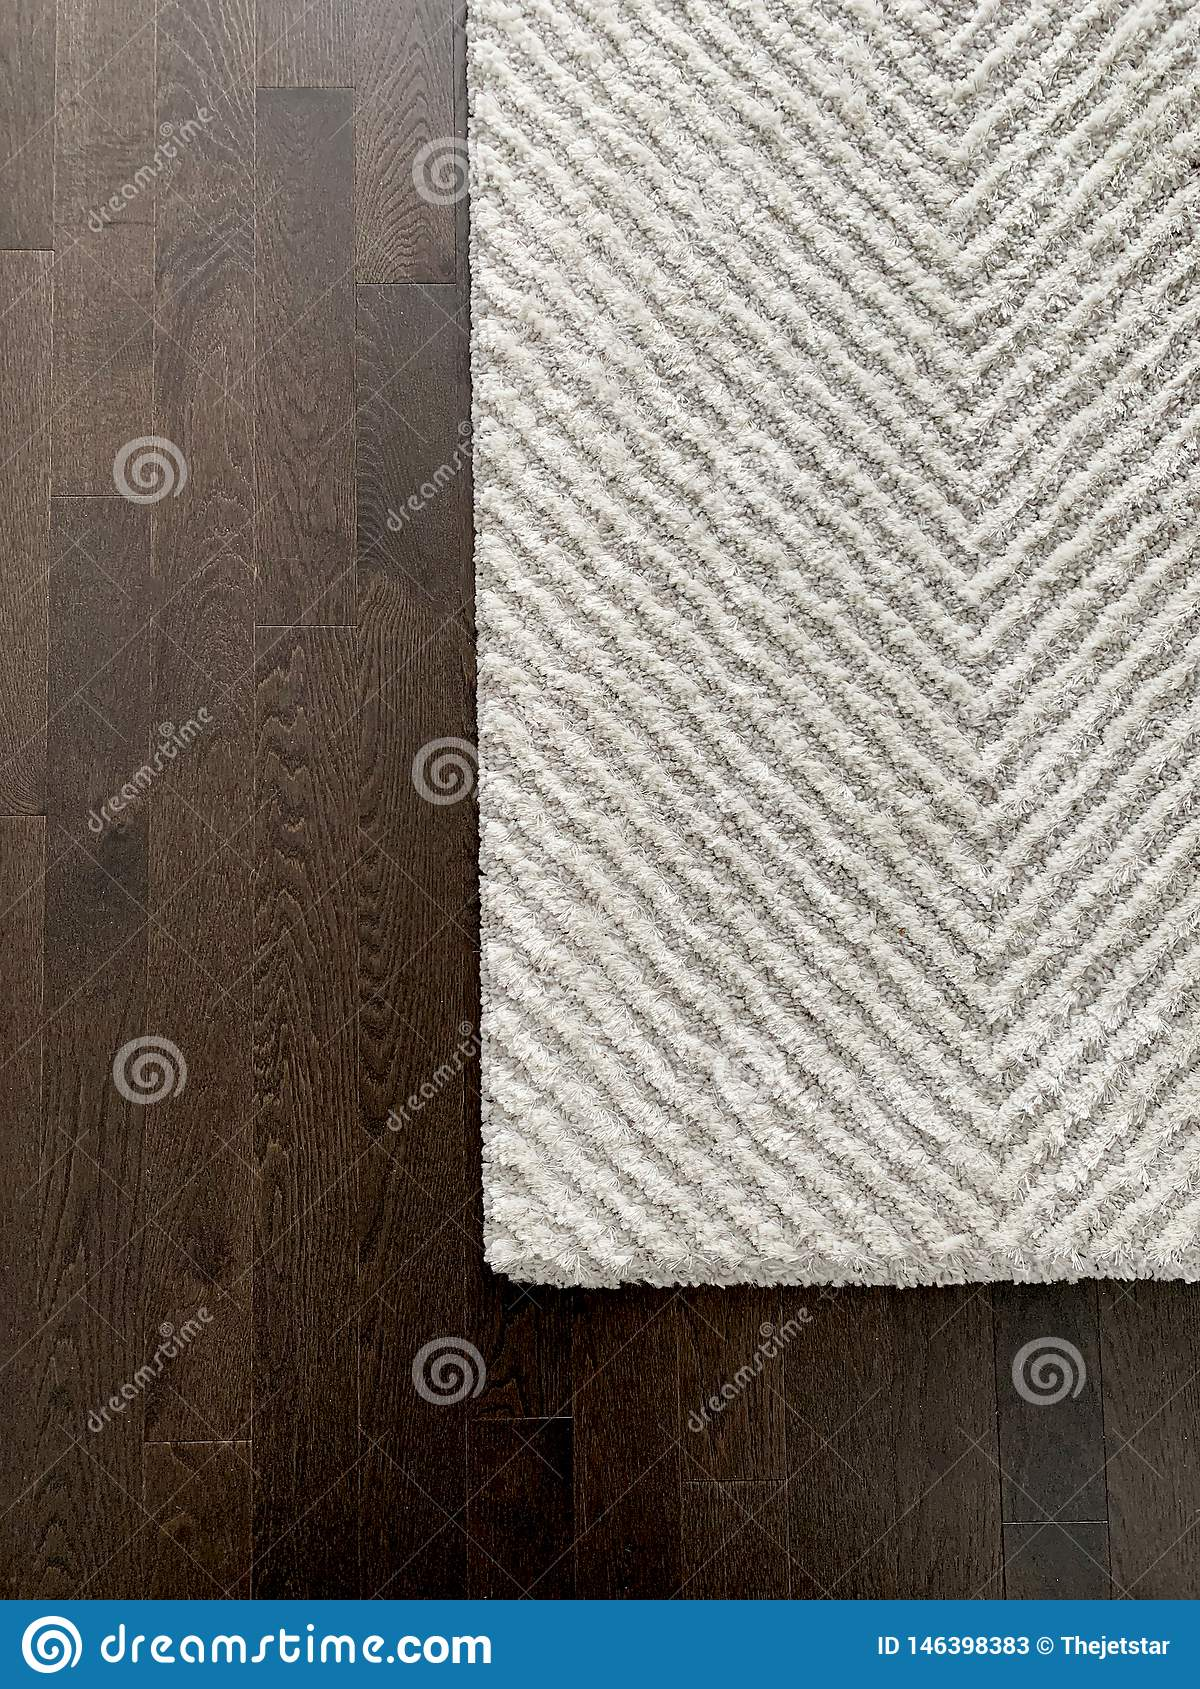 Picture of: White And Grey Chevron Rug On Dark Harwood Floor Texture Master Bedroom In Modern Luxury Home Stock Image Image Of Carpet Grey 146398383